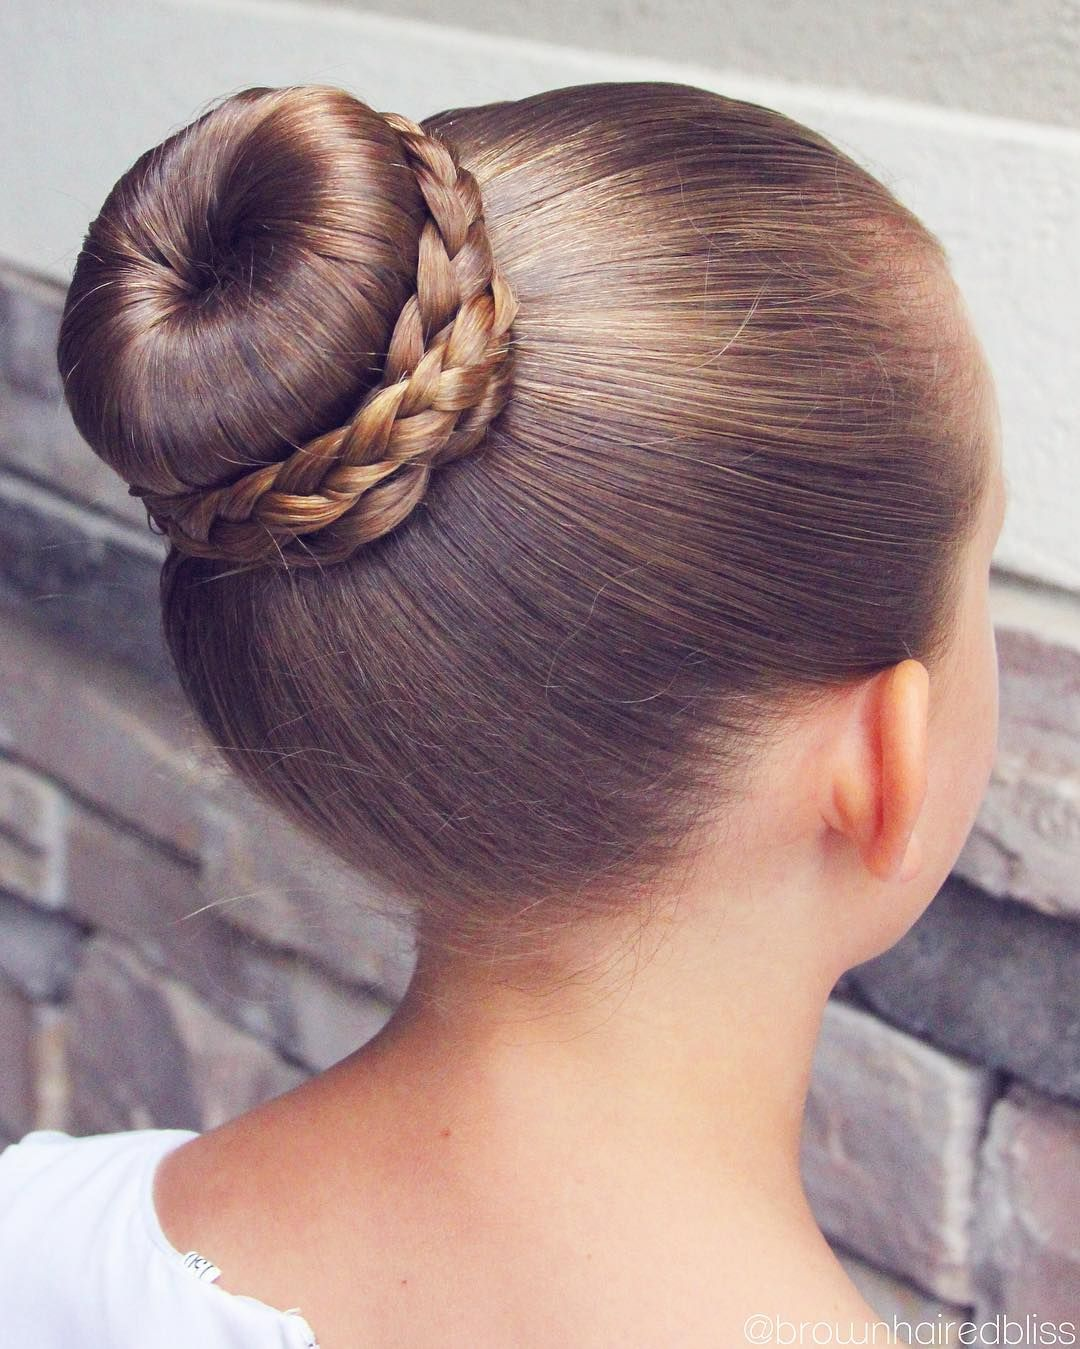 hair bun styles ballet bun with braids wrapped around acro for kayli 9493